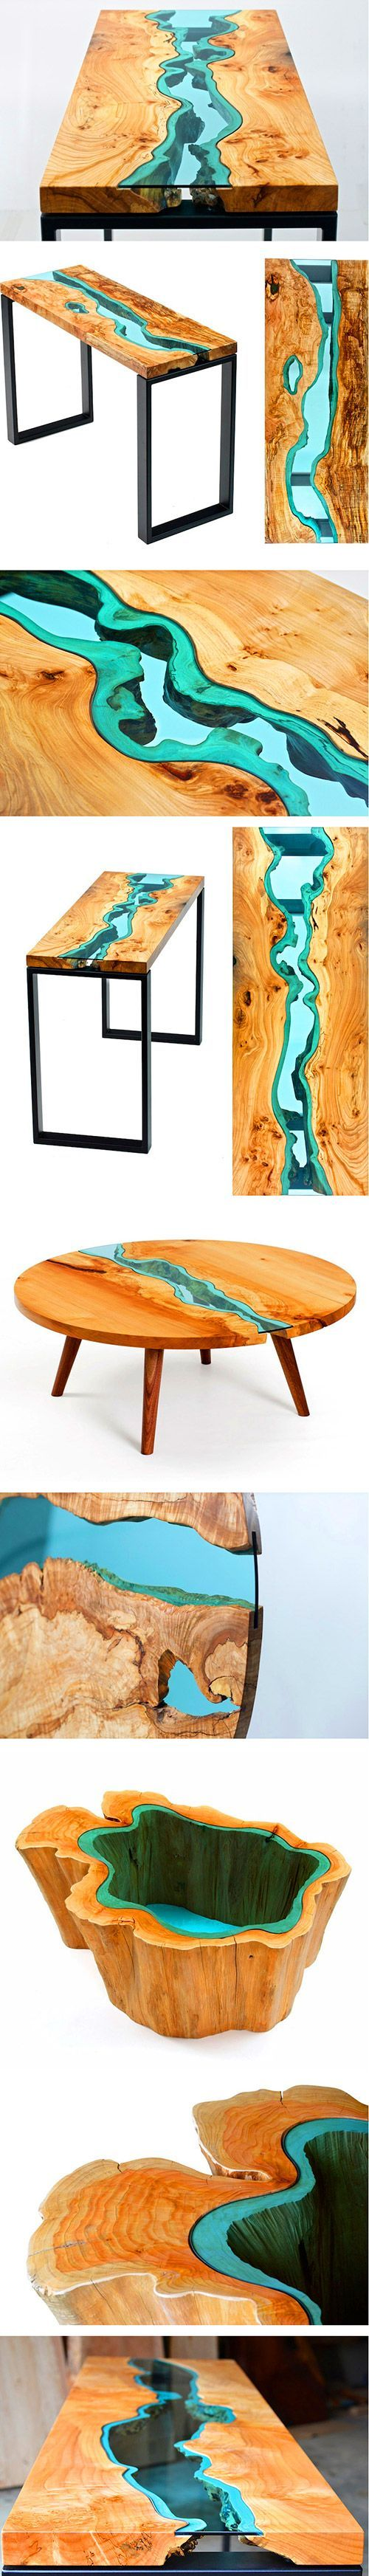 Sublime 24 Stunning Resin Wood Furniture https://www.fancydecors.co/2018/01/16/24-stunning-resin-wood-furniture/ Wood will eventually warp however well it's sealed. Besides making the wood stronger and weather-resistant,